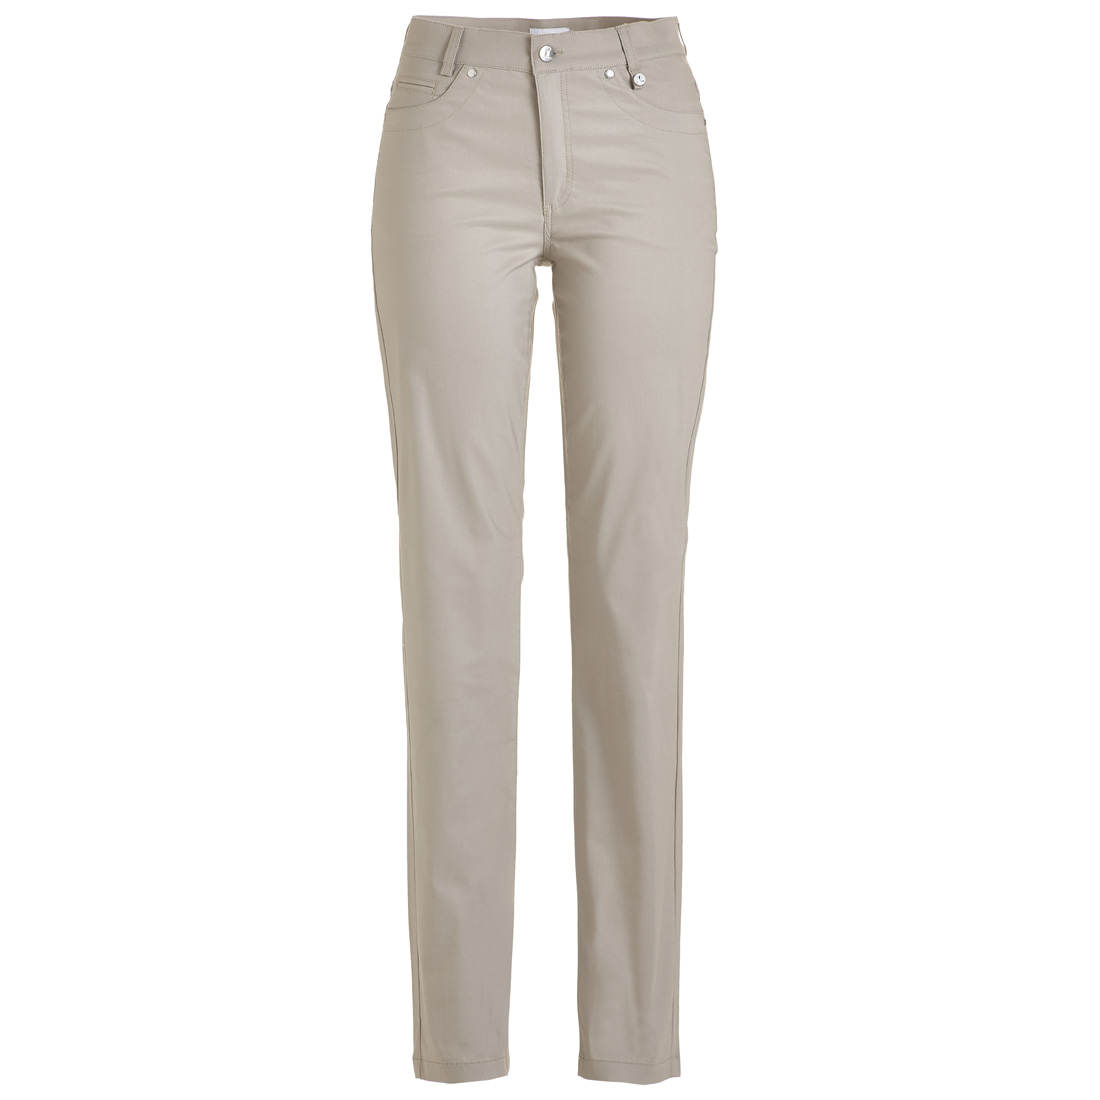 Damen 5-Pocket Techno Stretch Hose